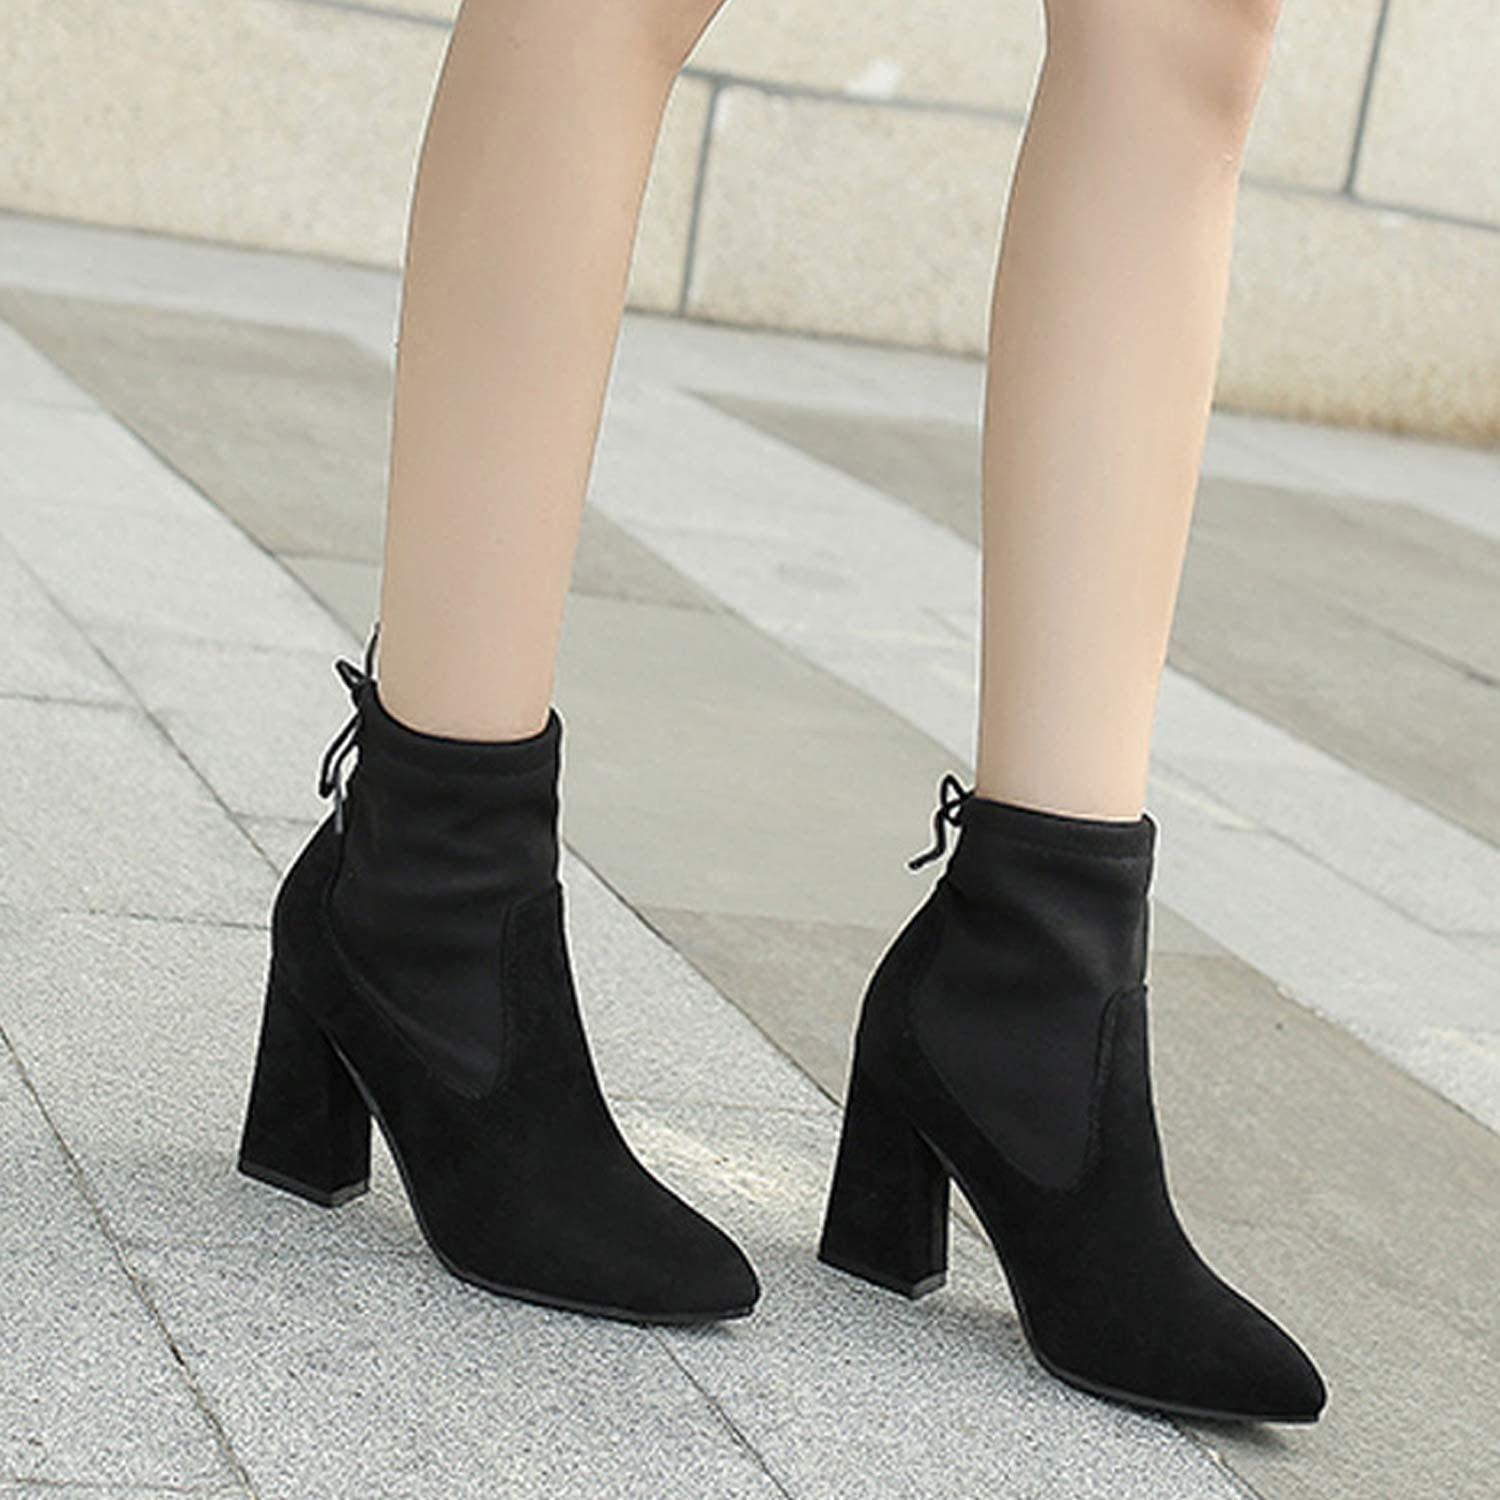 Whozx Womens Suede Ankle Boot Black